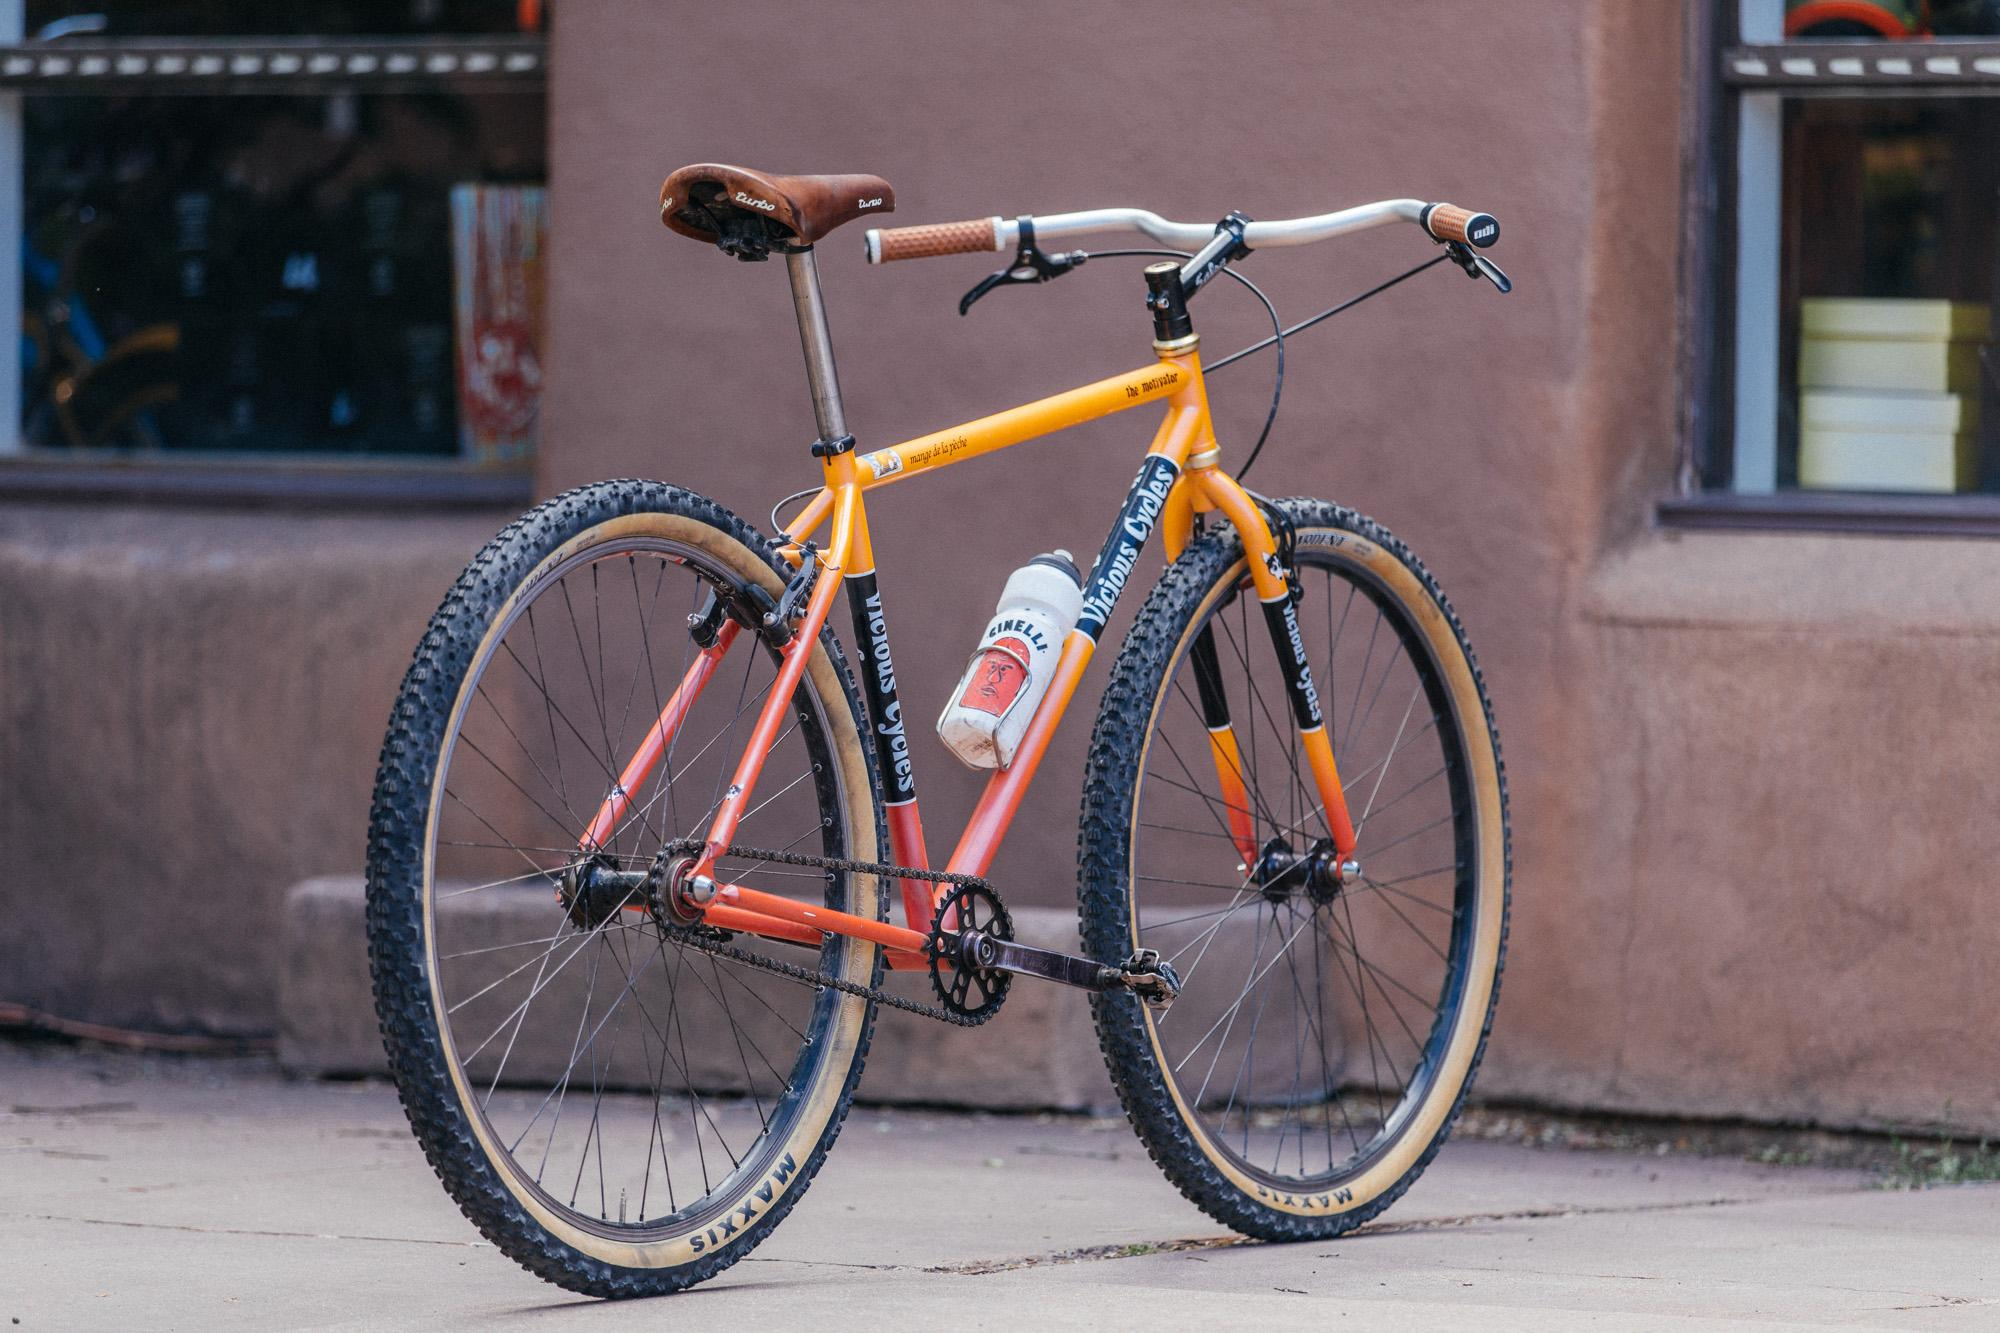 David's Creamsicle Viscious SS Cruiser